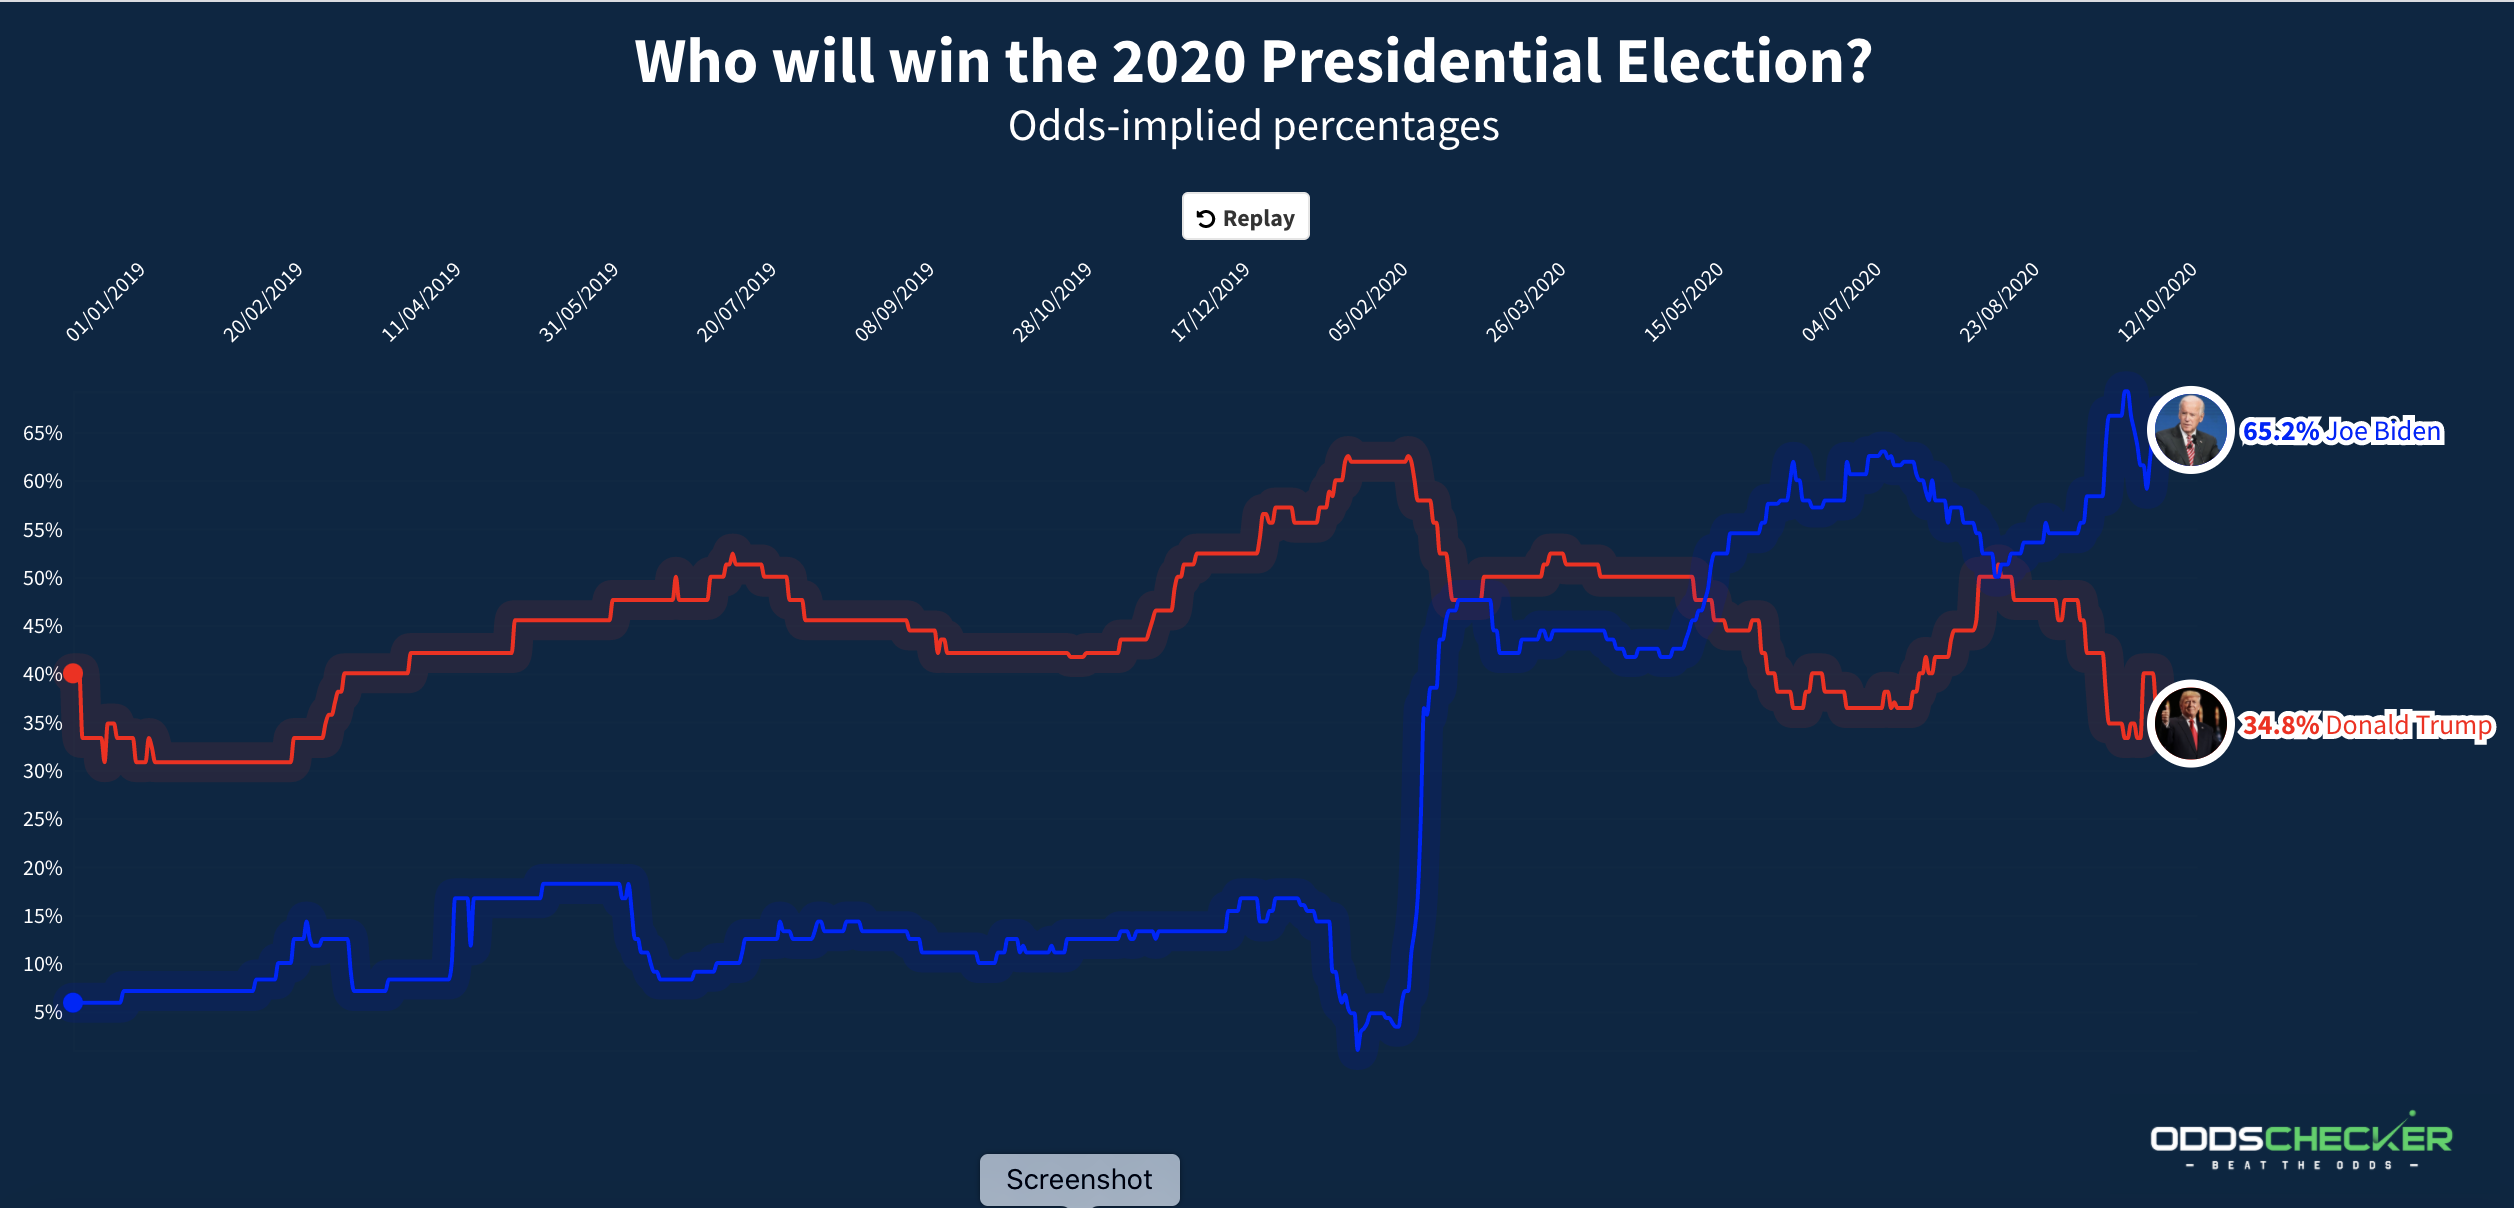 Who will win 2020 election